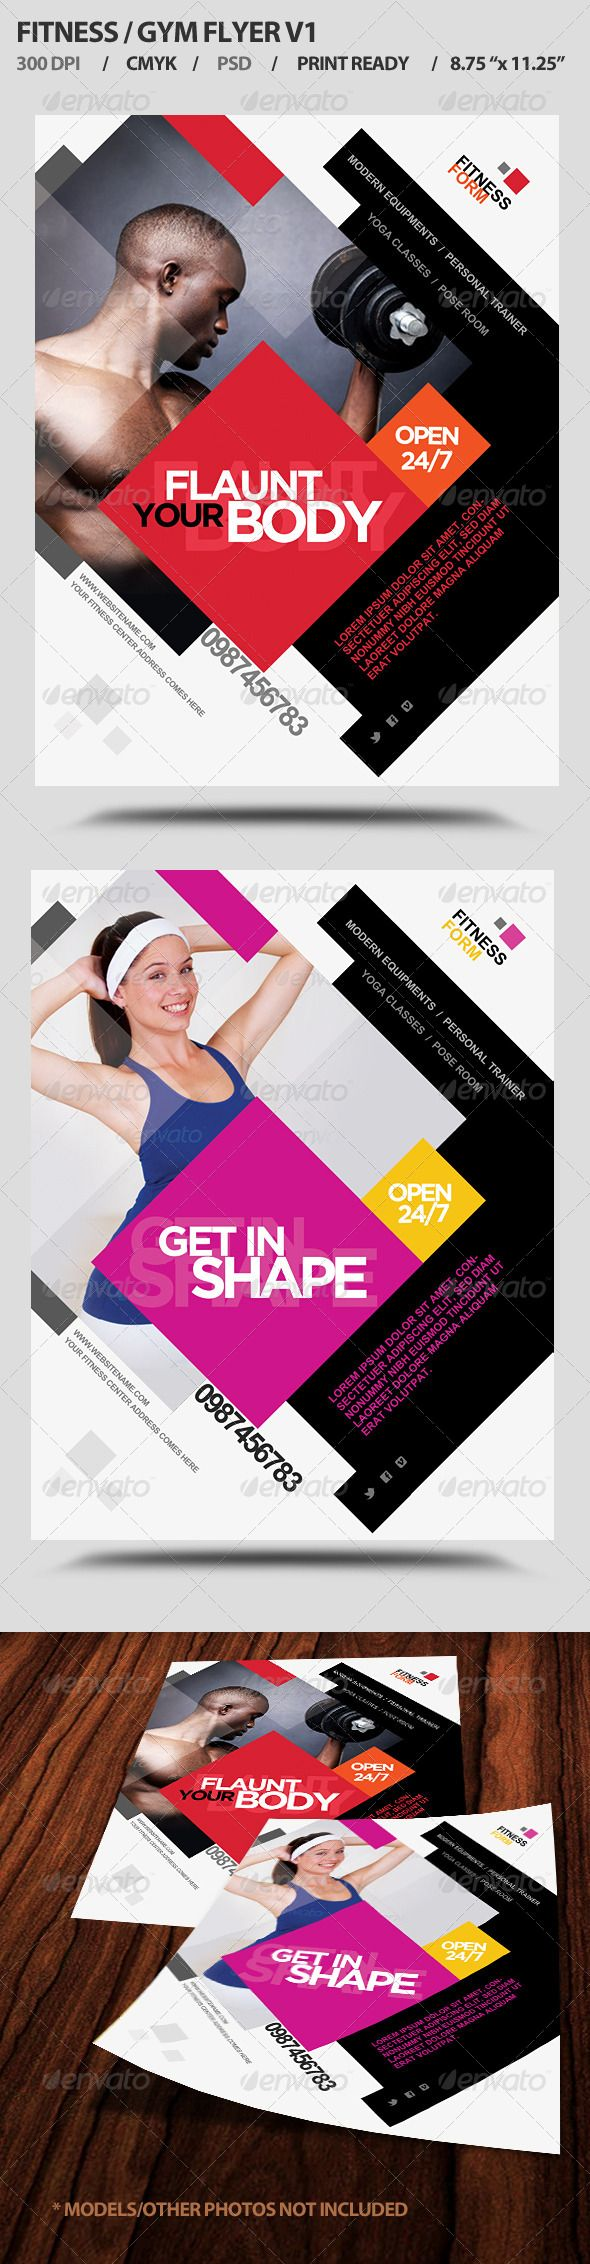 """""""Gym promotional flyer template"""" by Satgur Design Studio. Diagonals and asymmetry create energy in design. Viewers are also drawn in when they see people's faces and look where they see the models looking."""